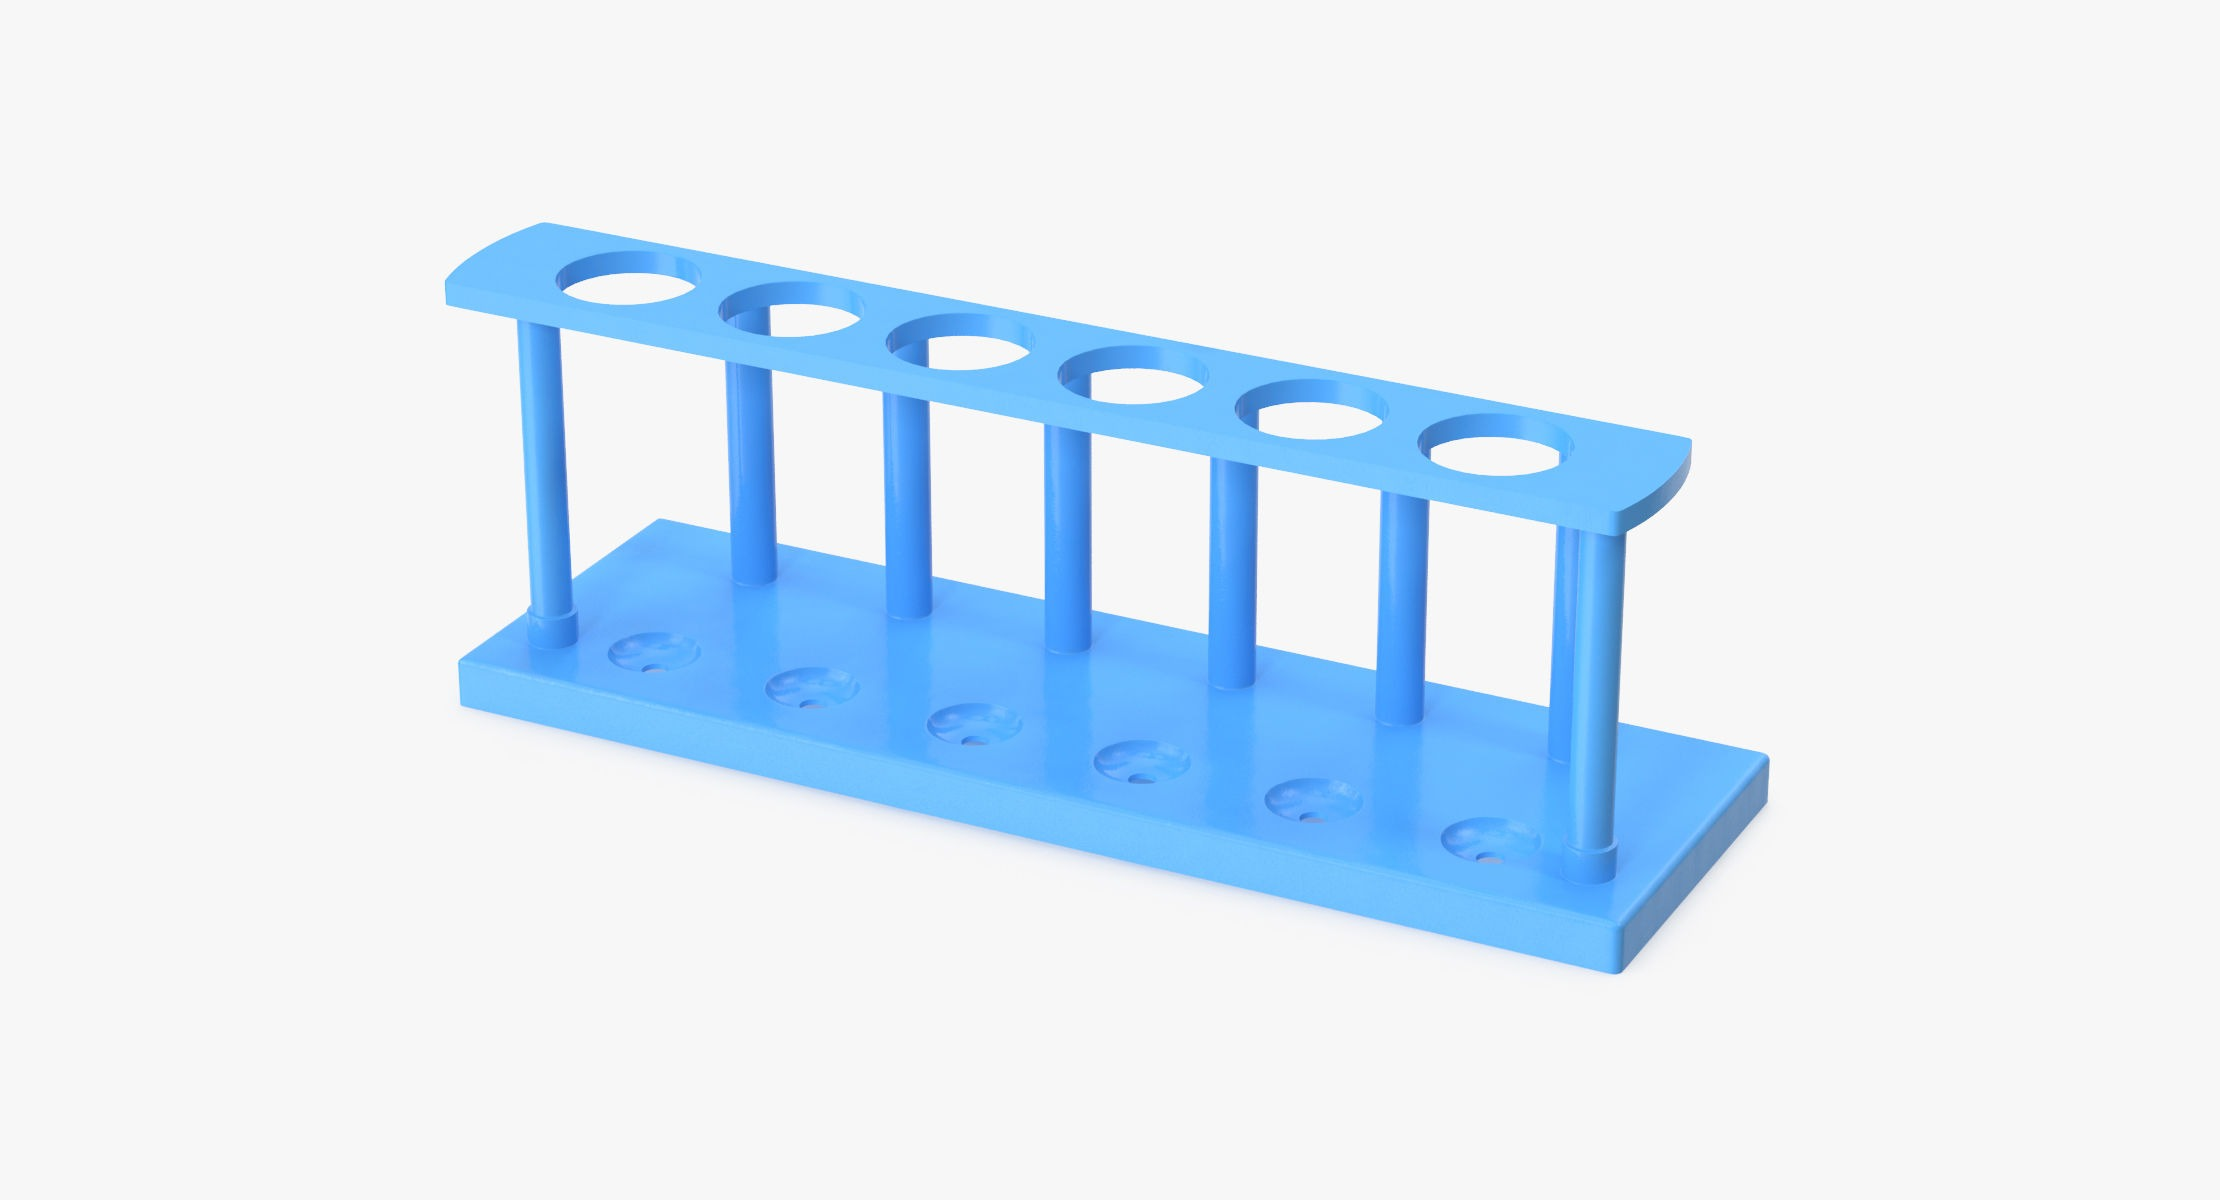 Test Tube Rack 02 - reel 1